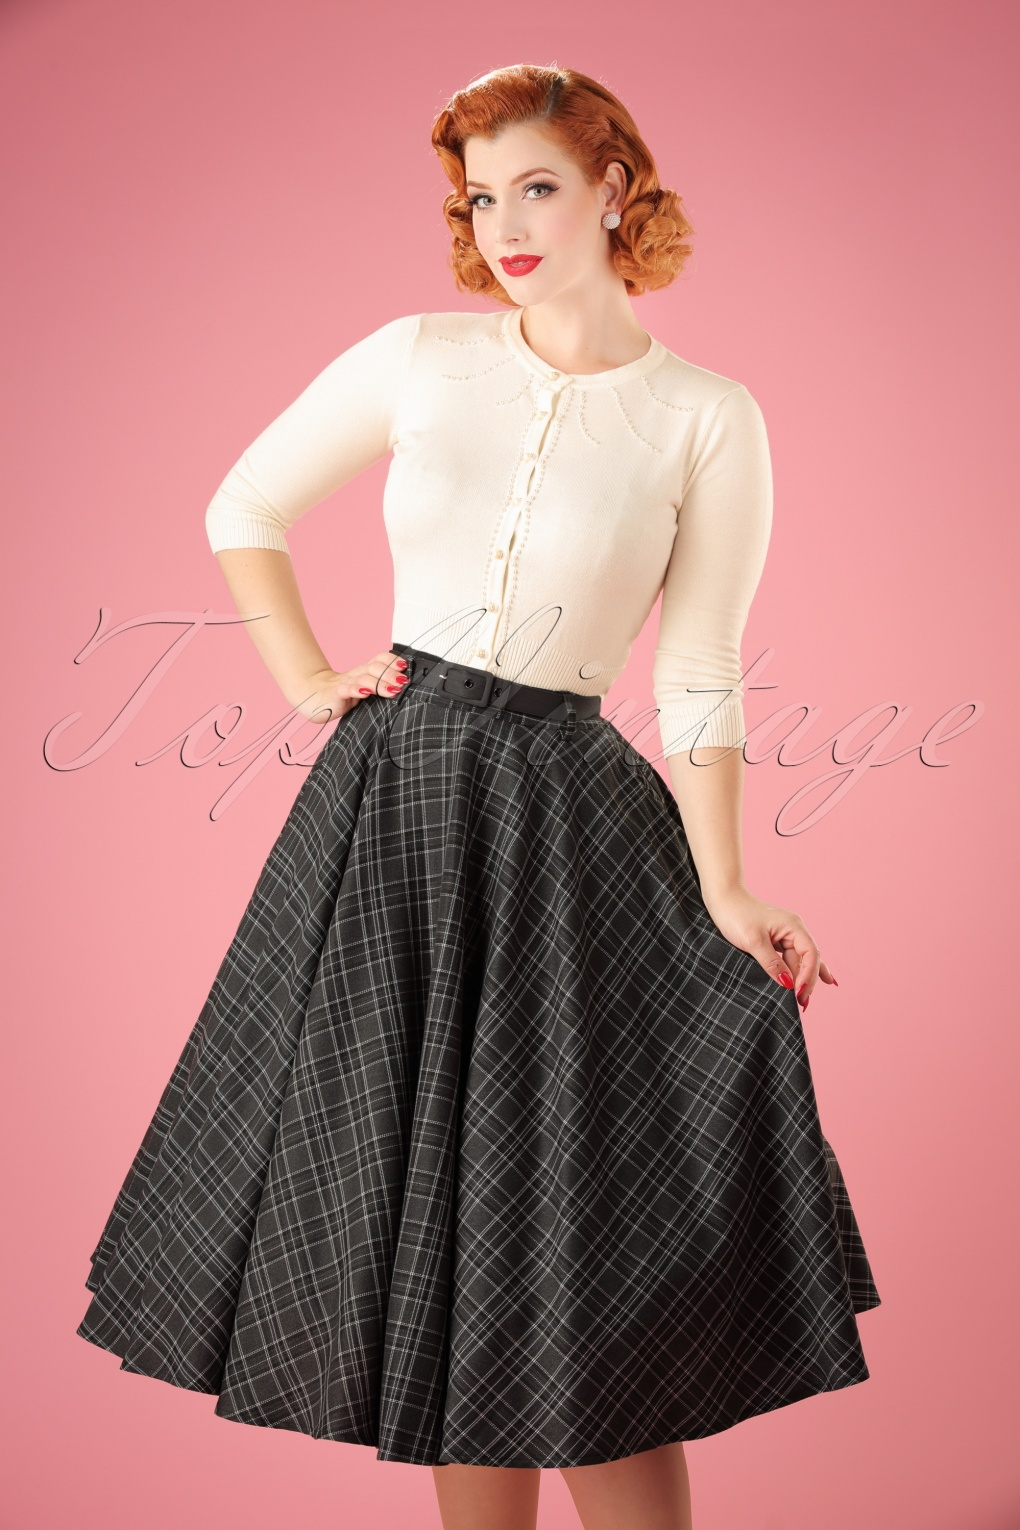 1950s Swing Skirt, Poodle Skirt, Pencil Skirts 50s Bridget Tartan Flare Skirt in Grey £43.48 AT vintagedancer.com